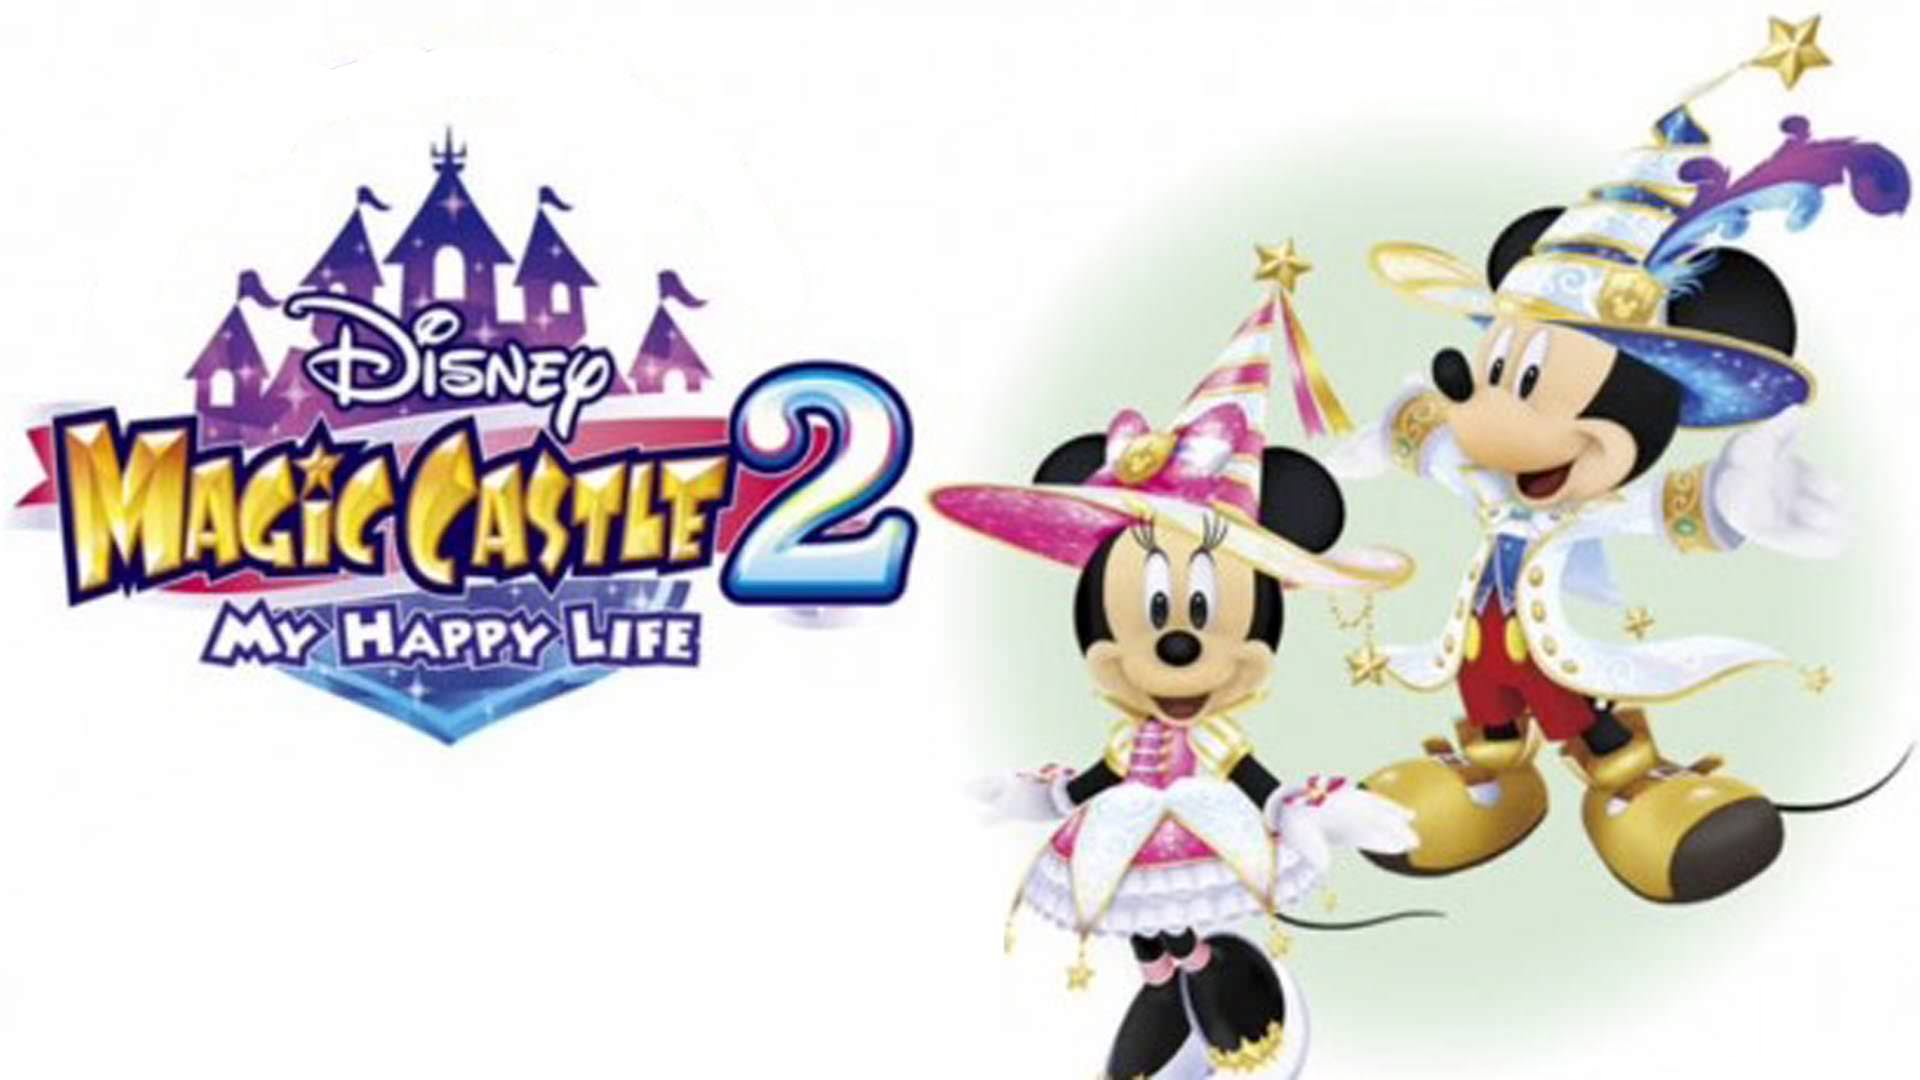 Bandai Namco anuncia 'Disney Magical World 2' para Nintendo 3DS